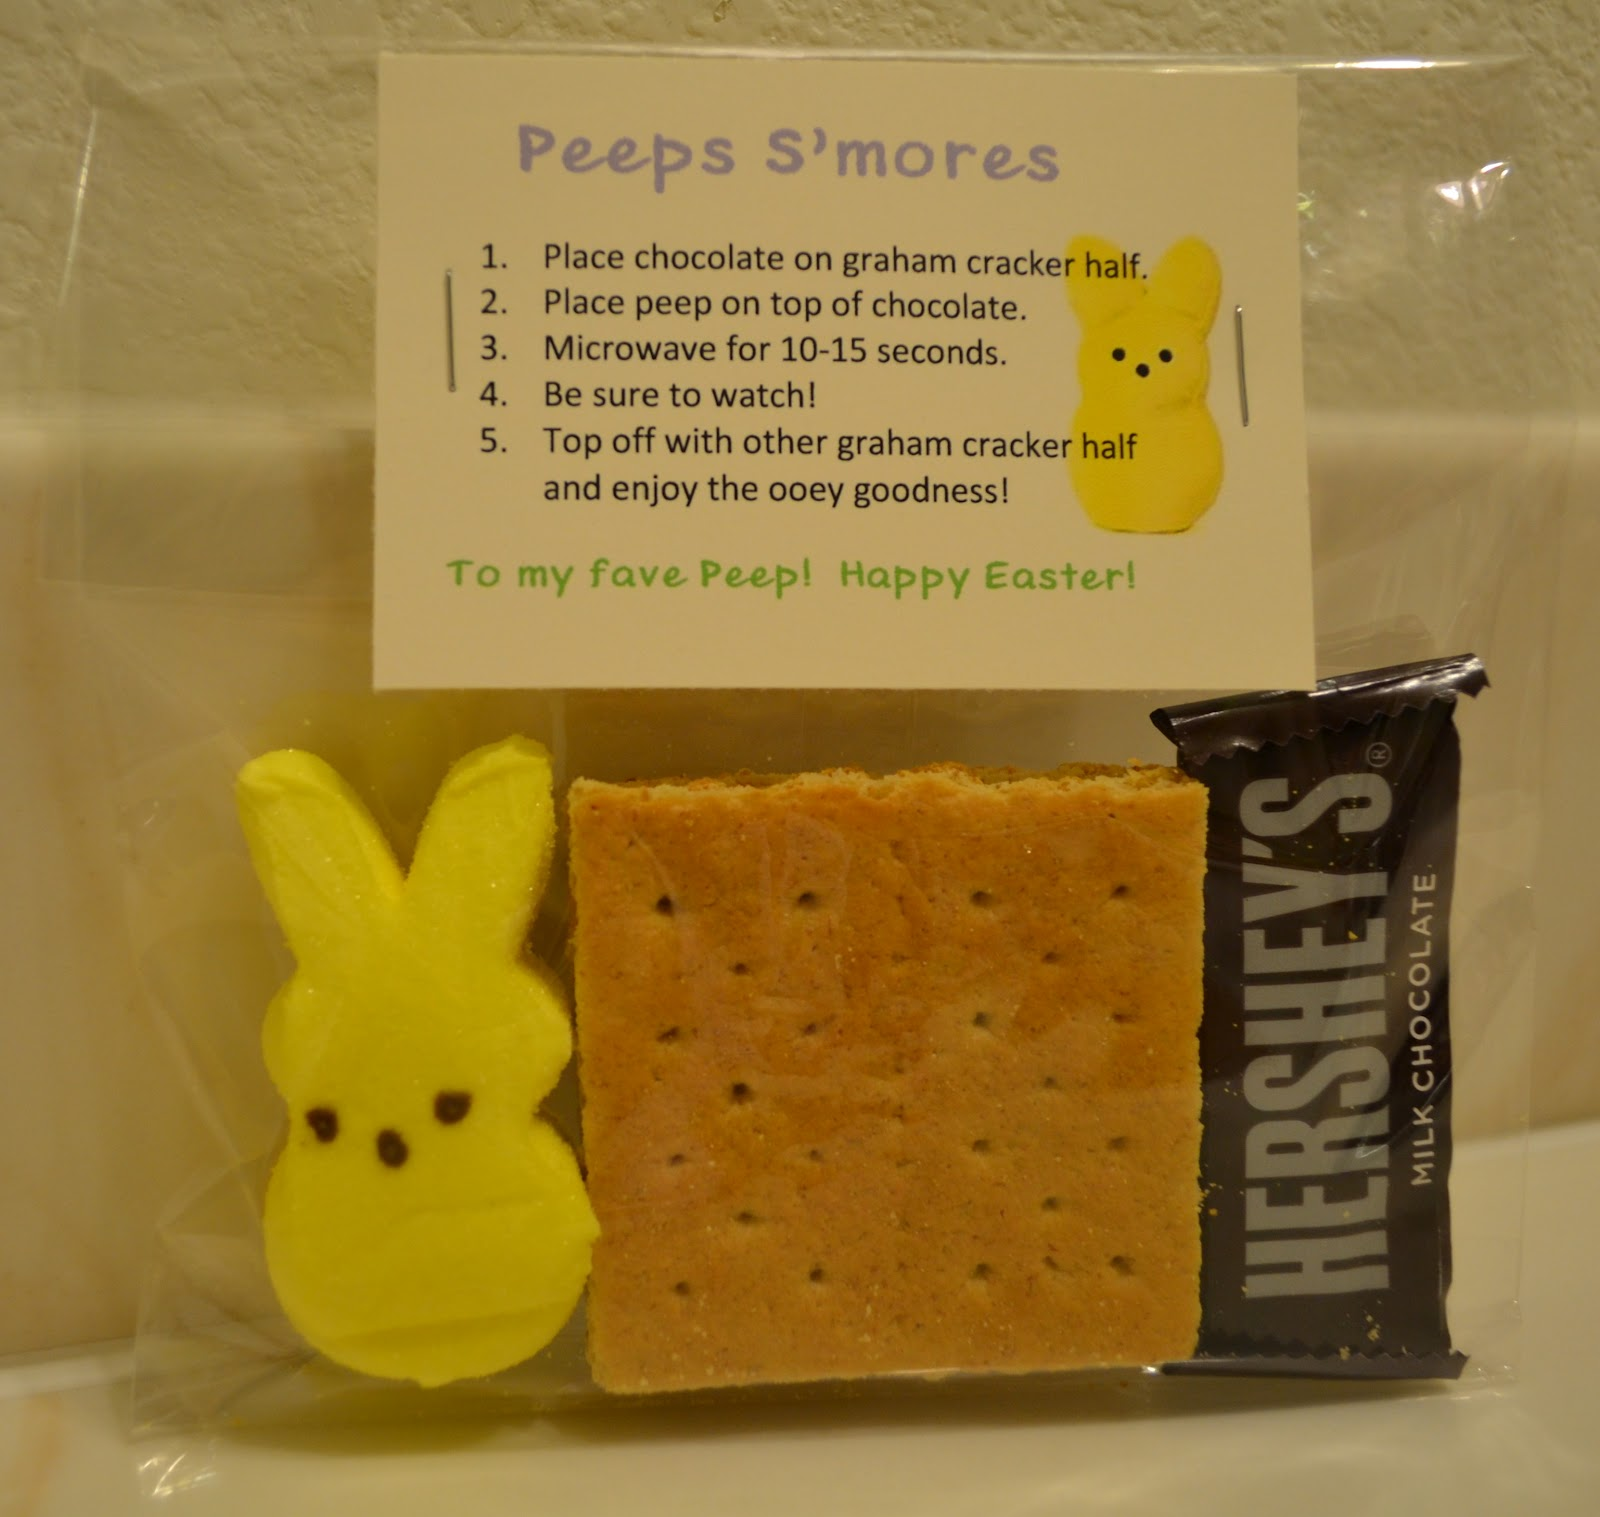 placed all the necessary ingredients to make Peep S'mores in the ...